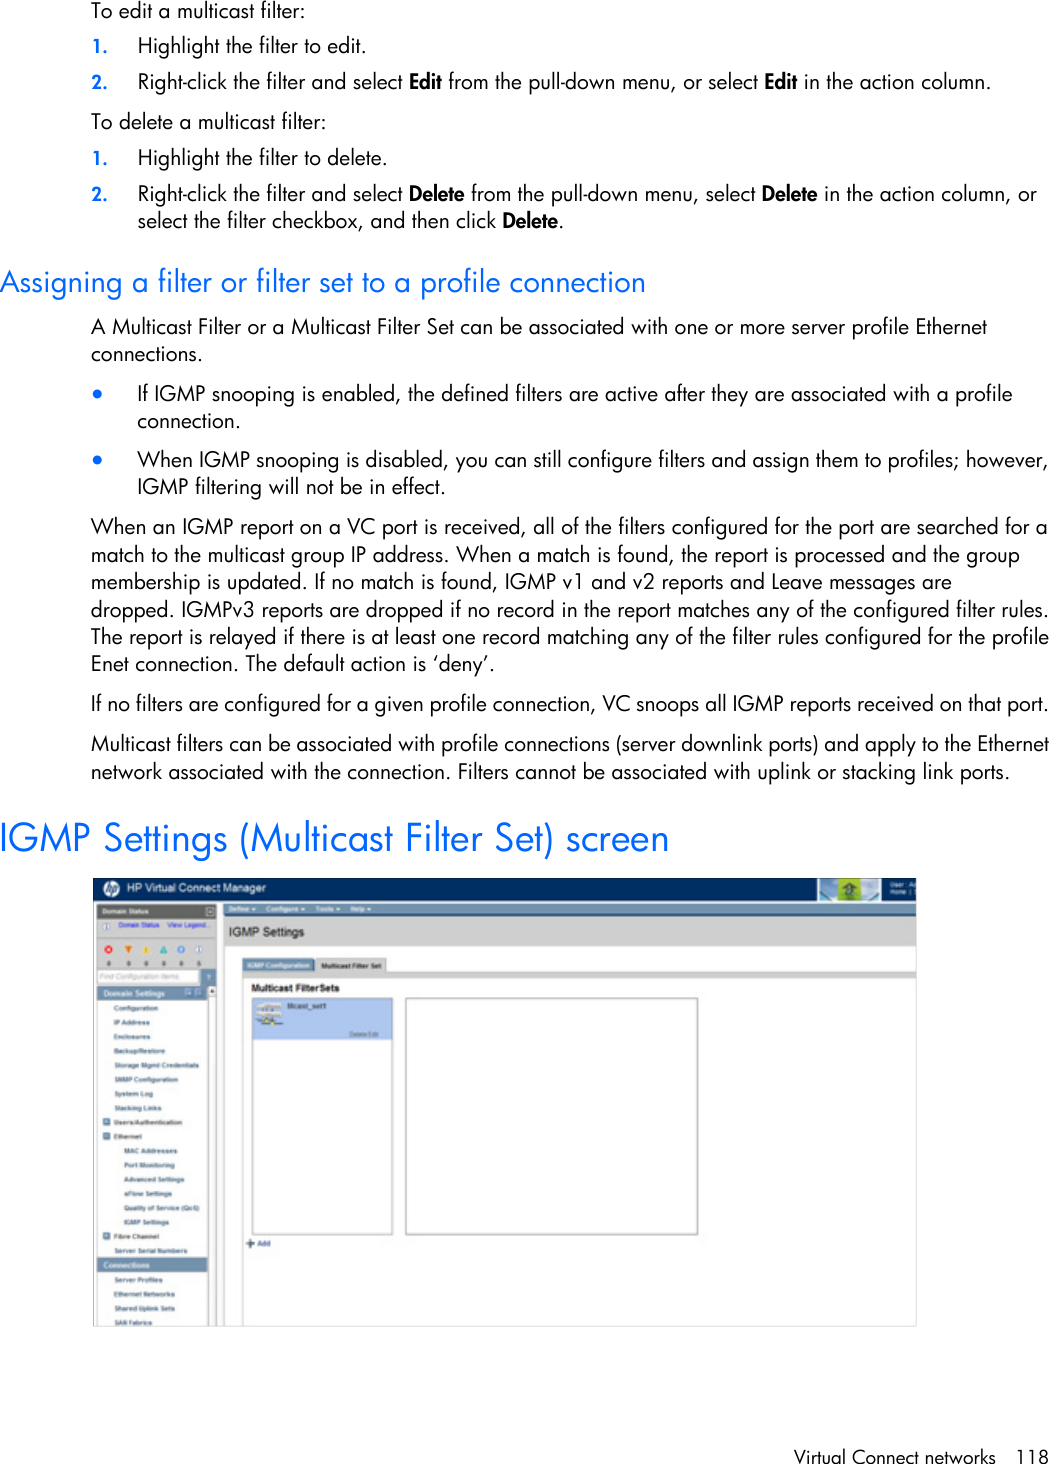 Hp Virtual Connect Firmware Users Manual For C Class